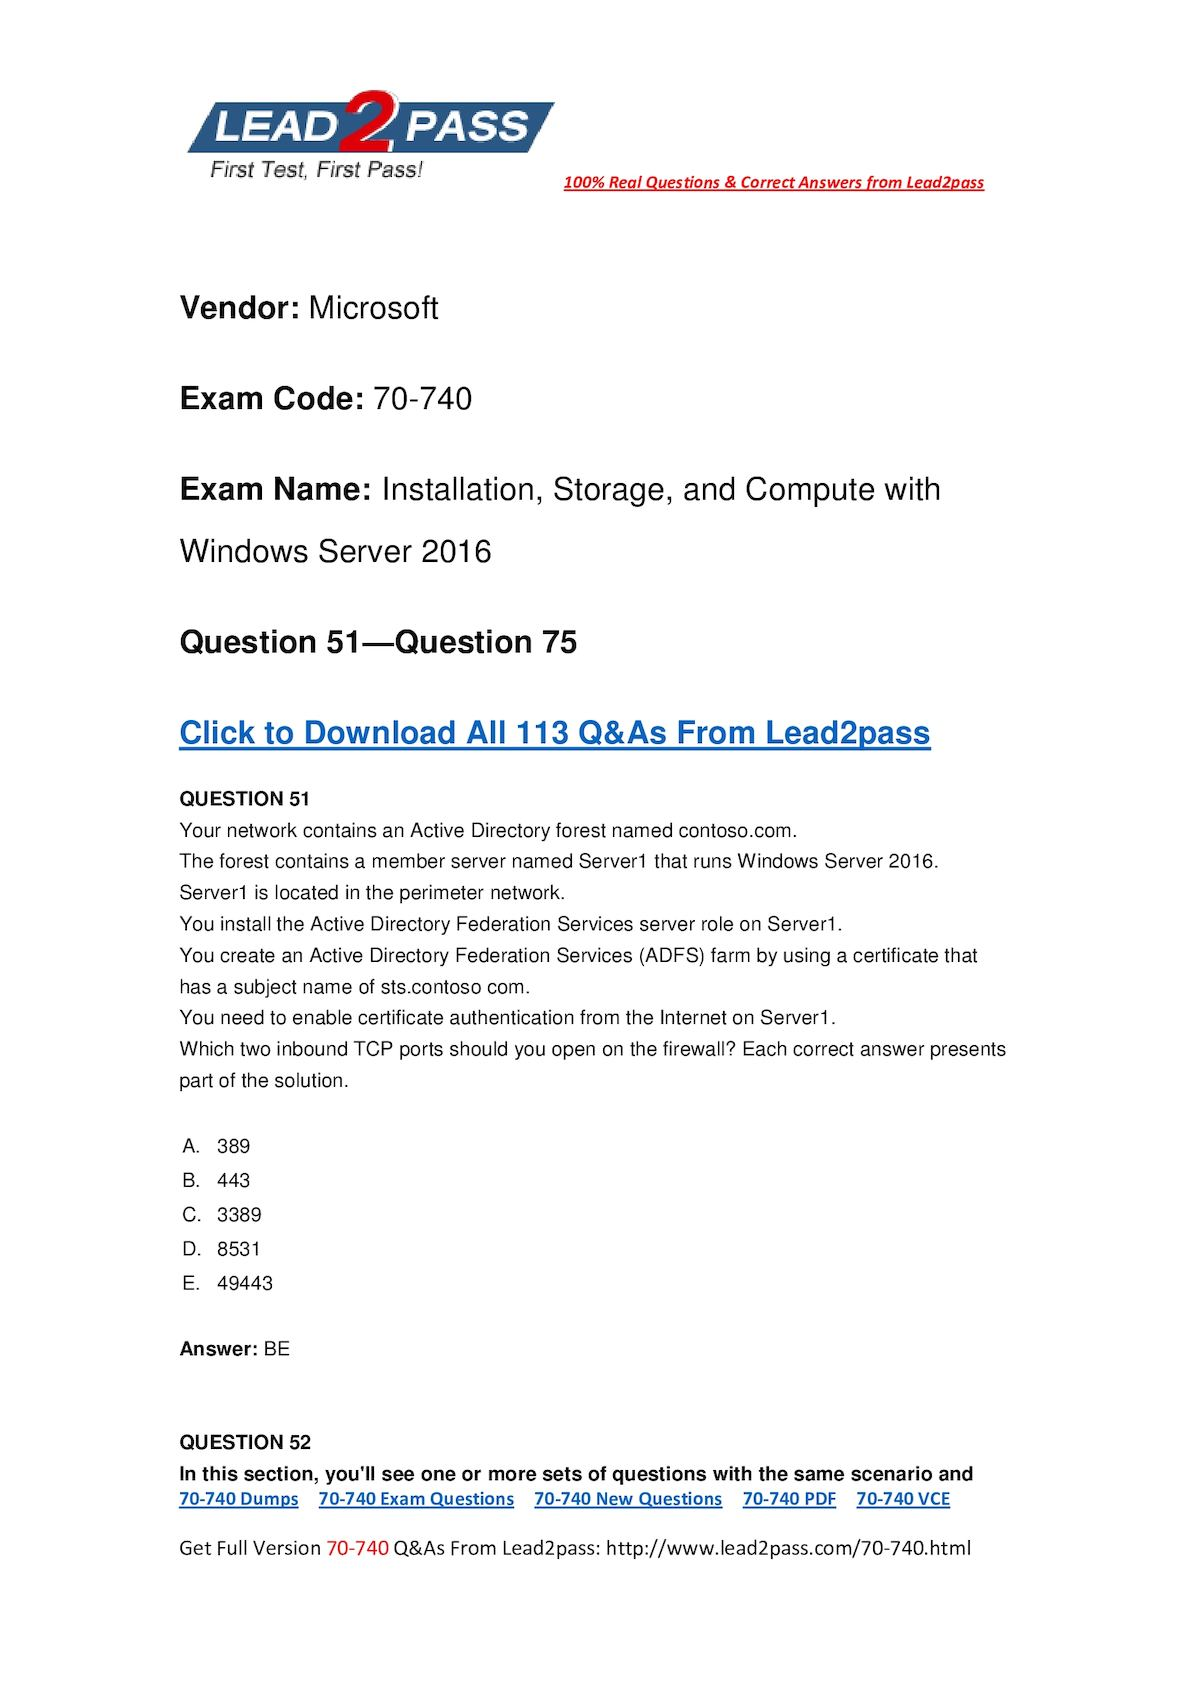 [Full Version] 70-740 New Questions For Passing The 70-740 Certification Exam (51-75)